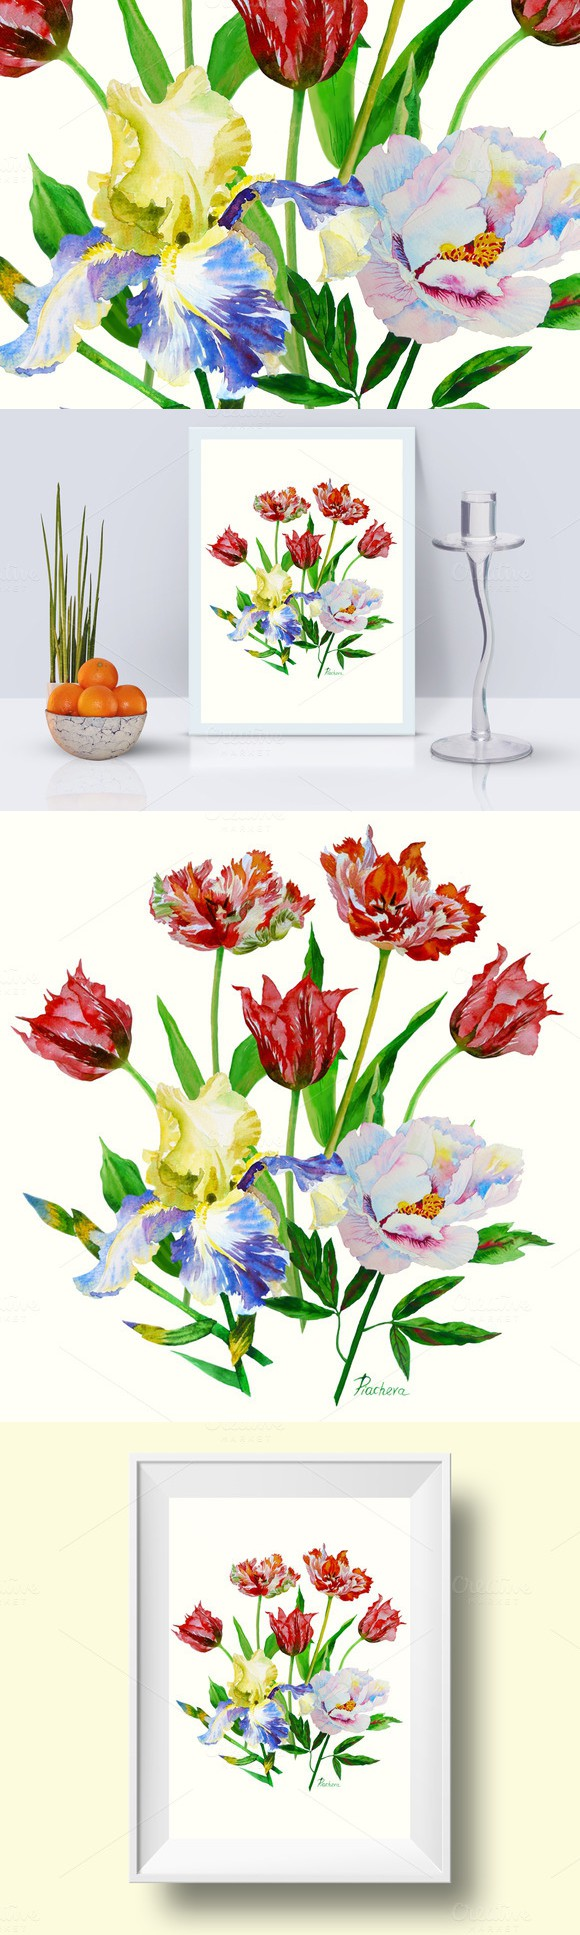 Bouquet with tulips iris and peony watercolors peonies and irises